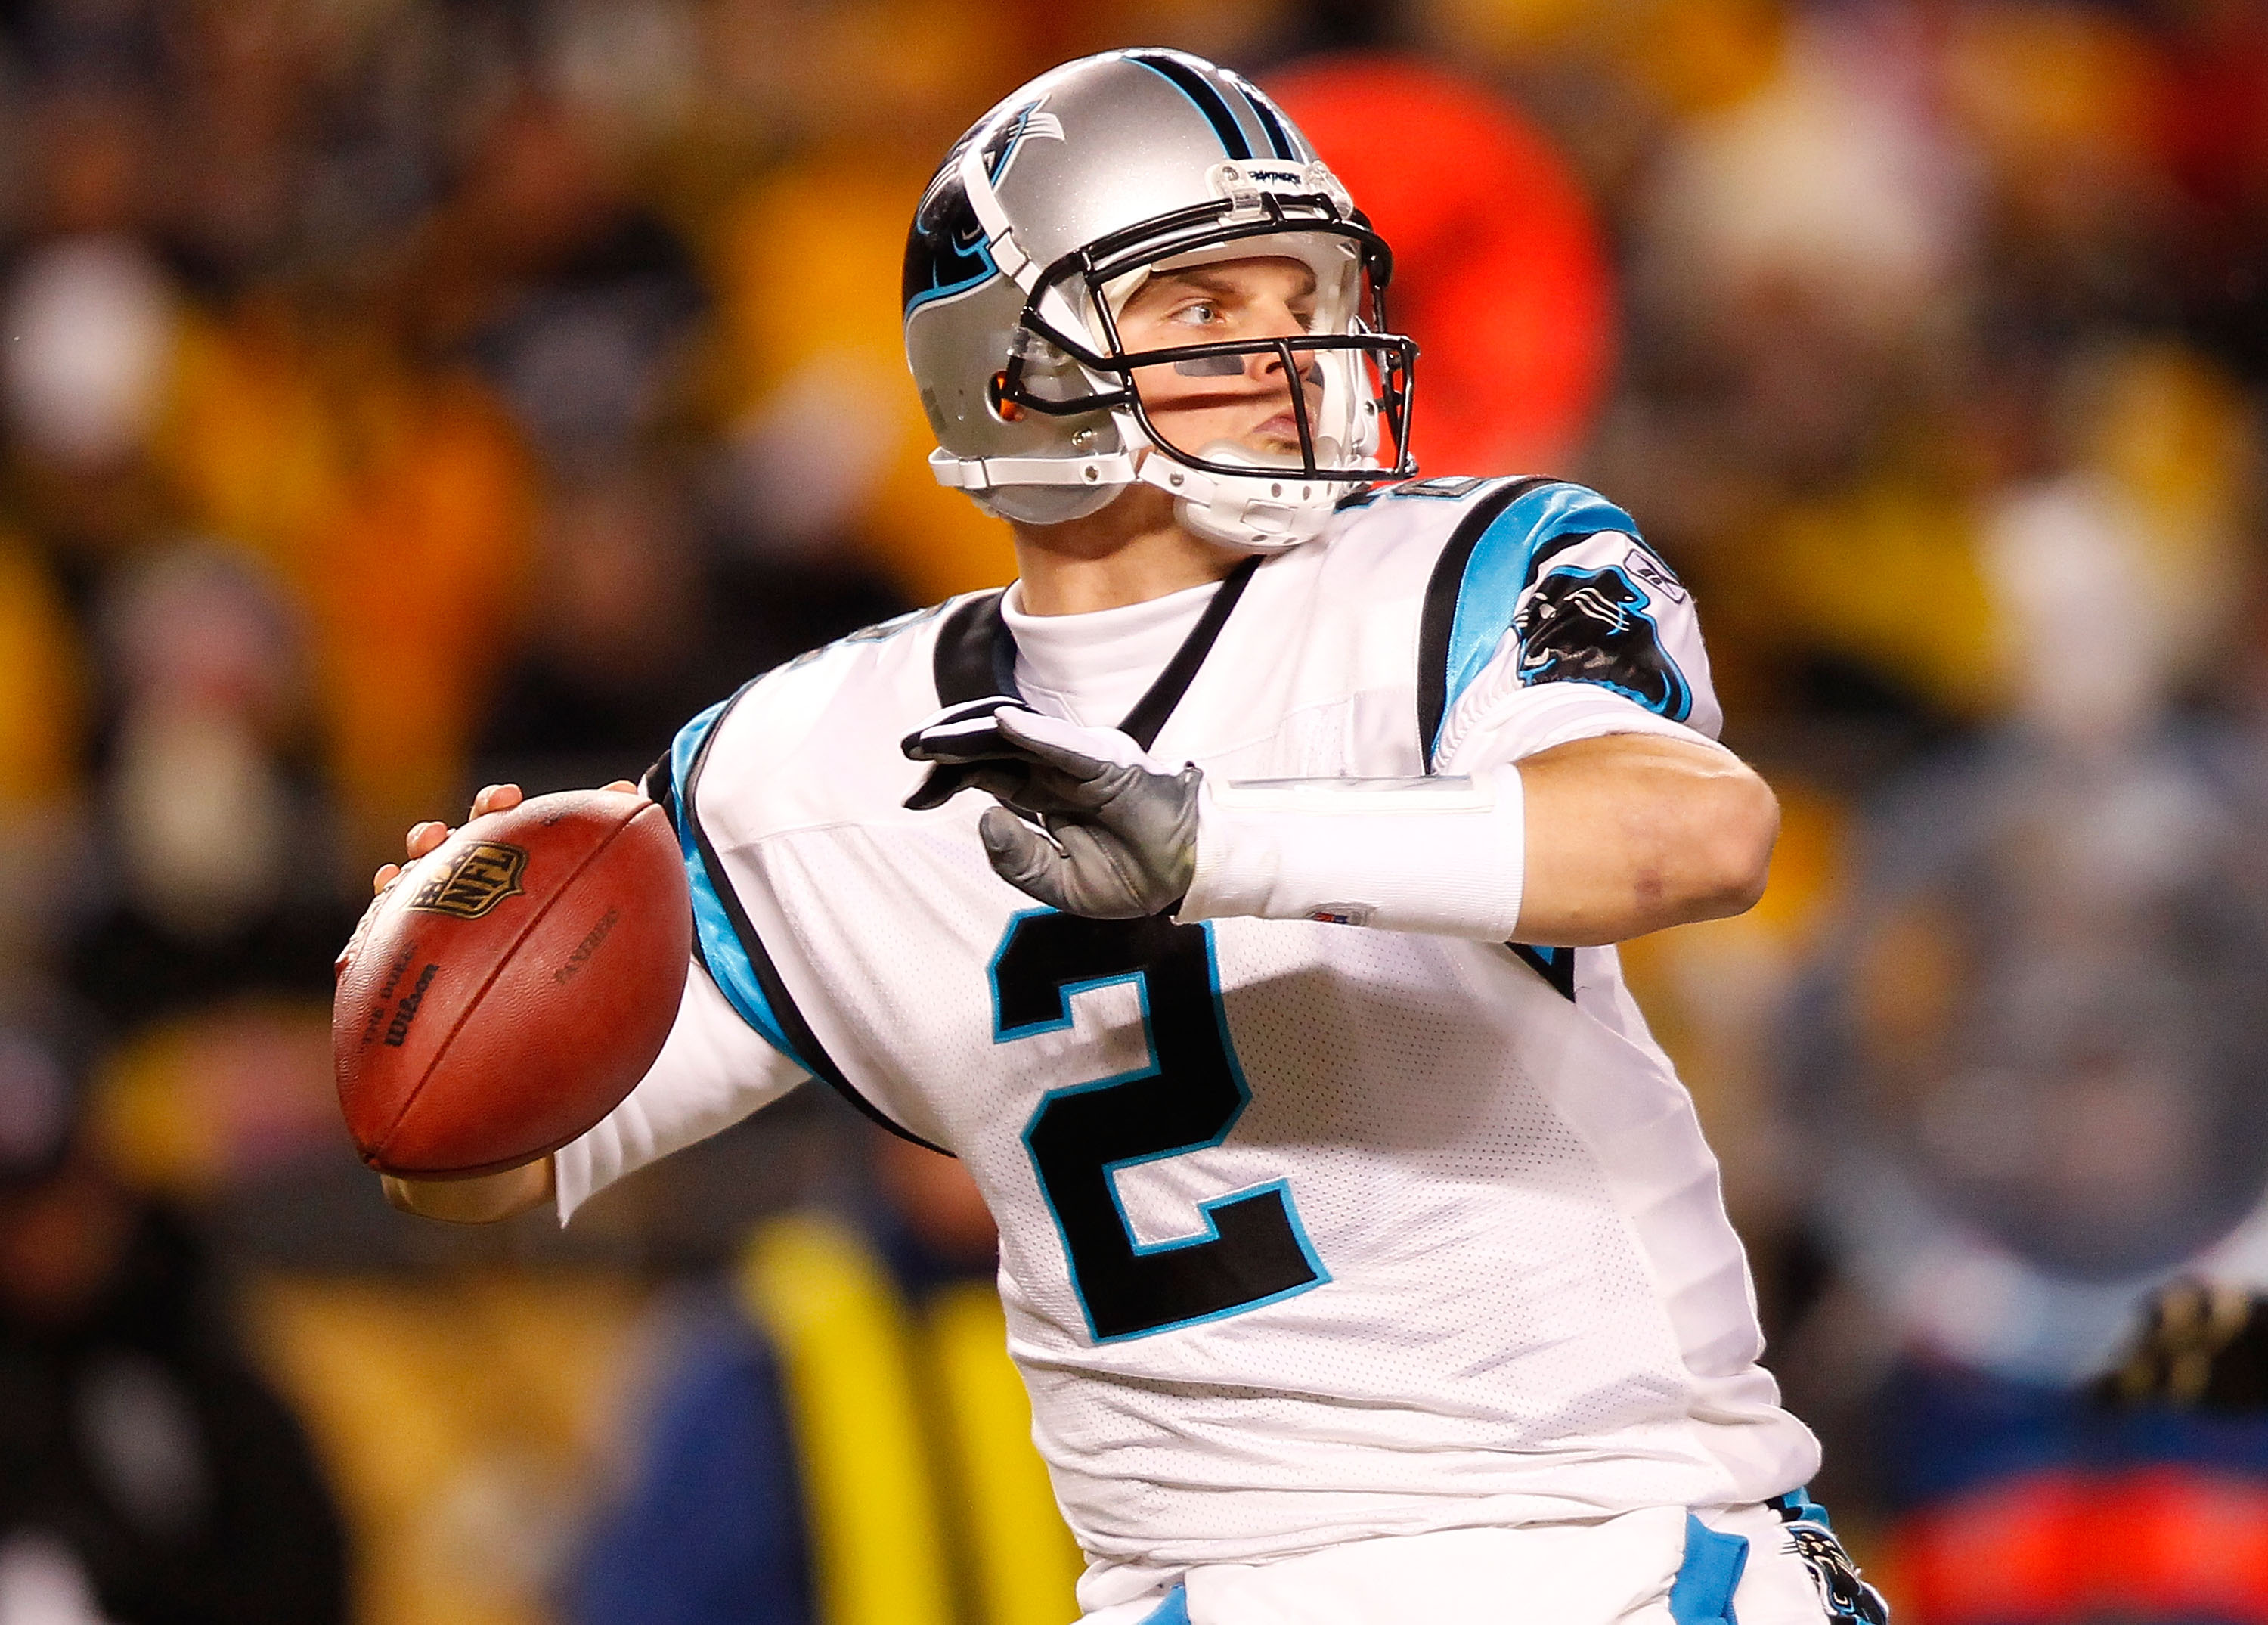 PITTSBURGH - DECEMBER 23:  Jimmy Clausen #2 of the Carolina Panthers drops back to pass against the Pittsburgh Steelers during the game on December 23, 2010 at Heinz Field in Pittsburgh, Pennsylvania.  (Photo by Jared Wickerham/Getty Images)